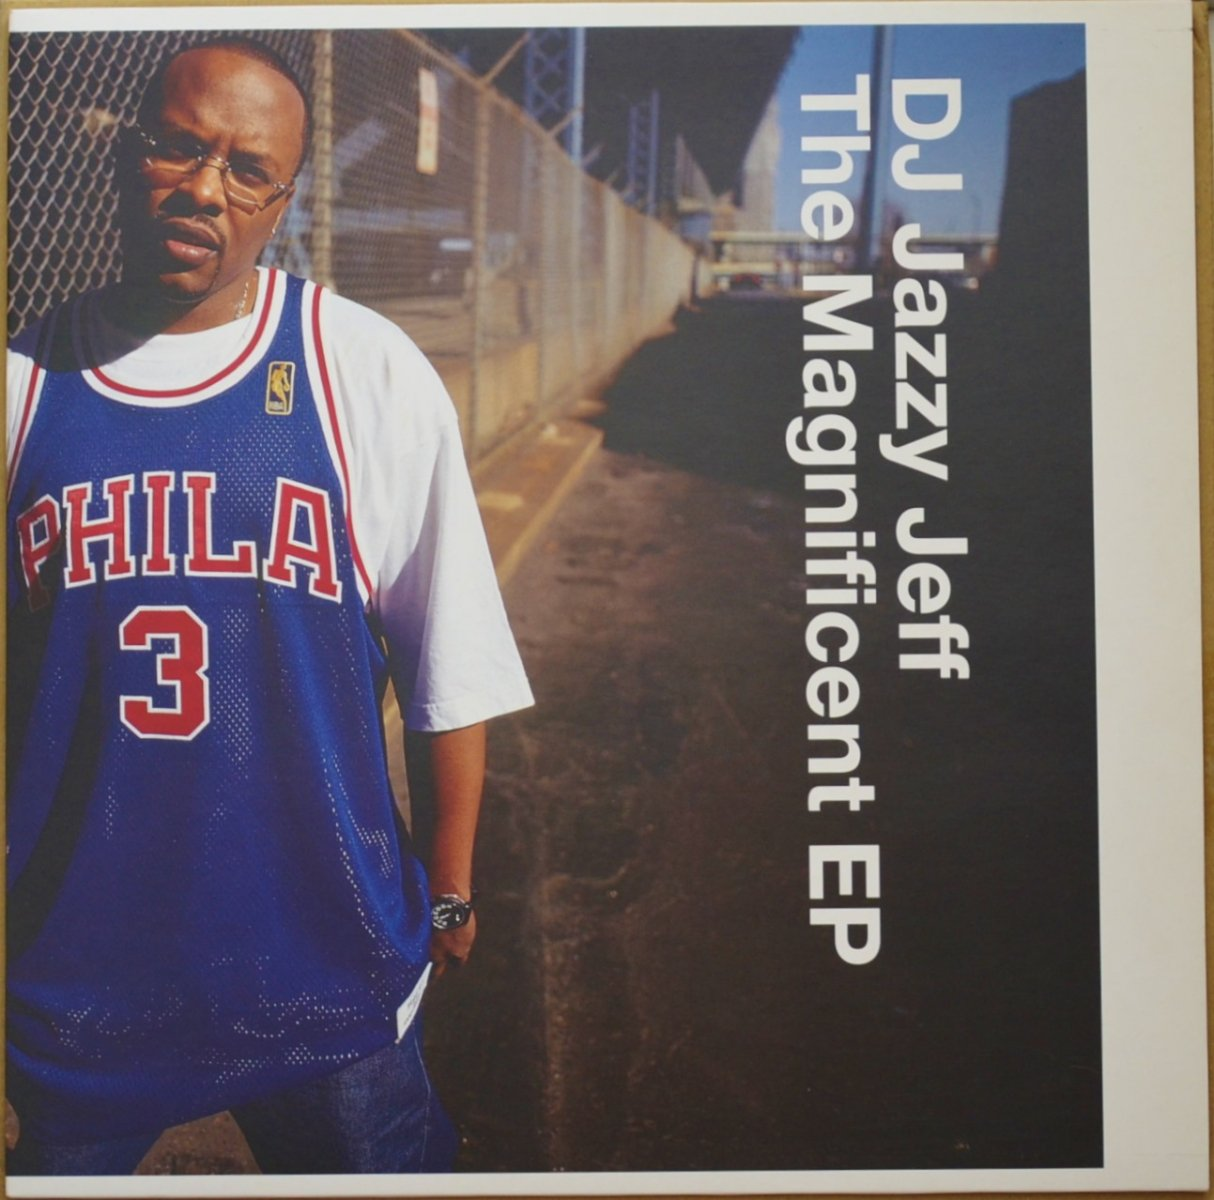 DJ JAZZY JEFF ‎/ FOR DA LOVE OF DA GAME (THE MAGNIFICENT EP) (12